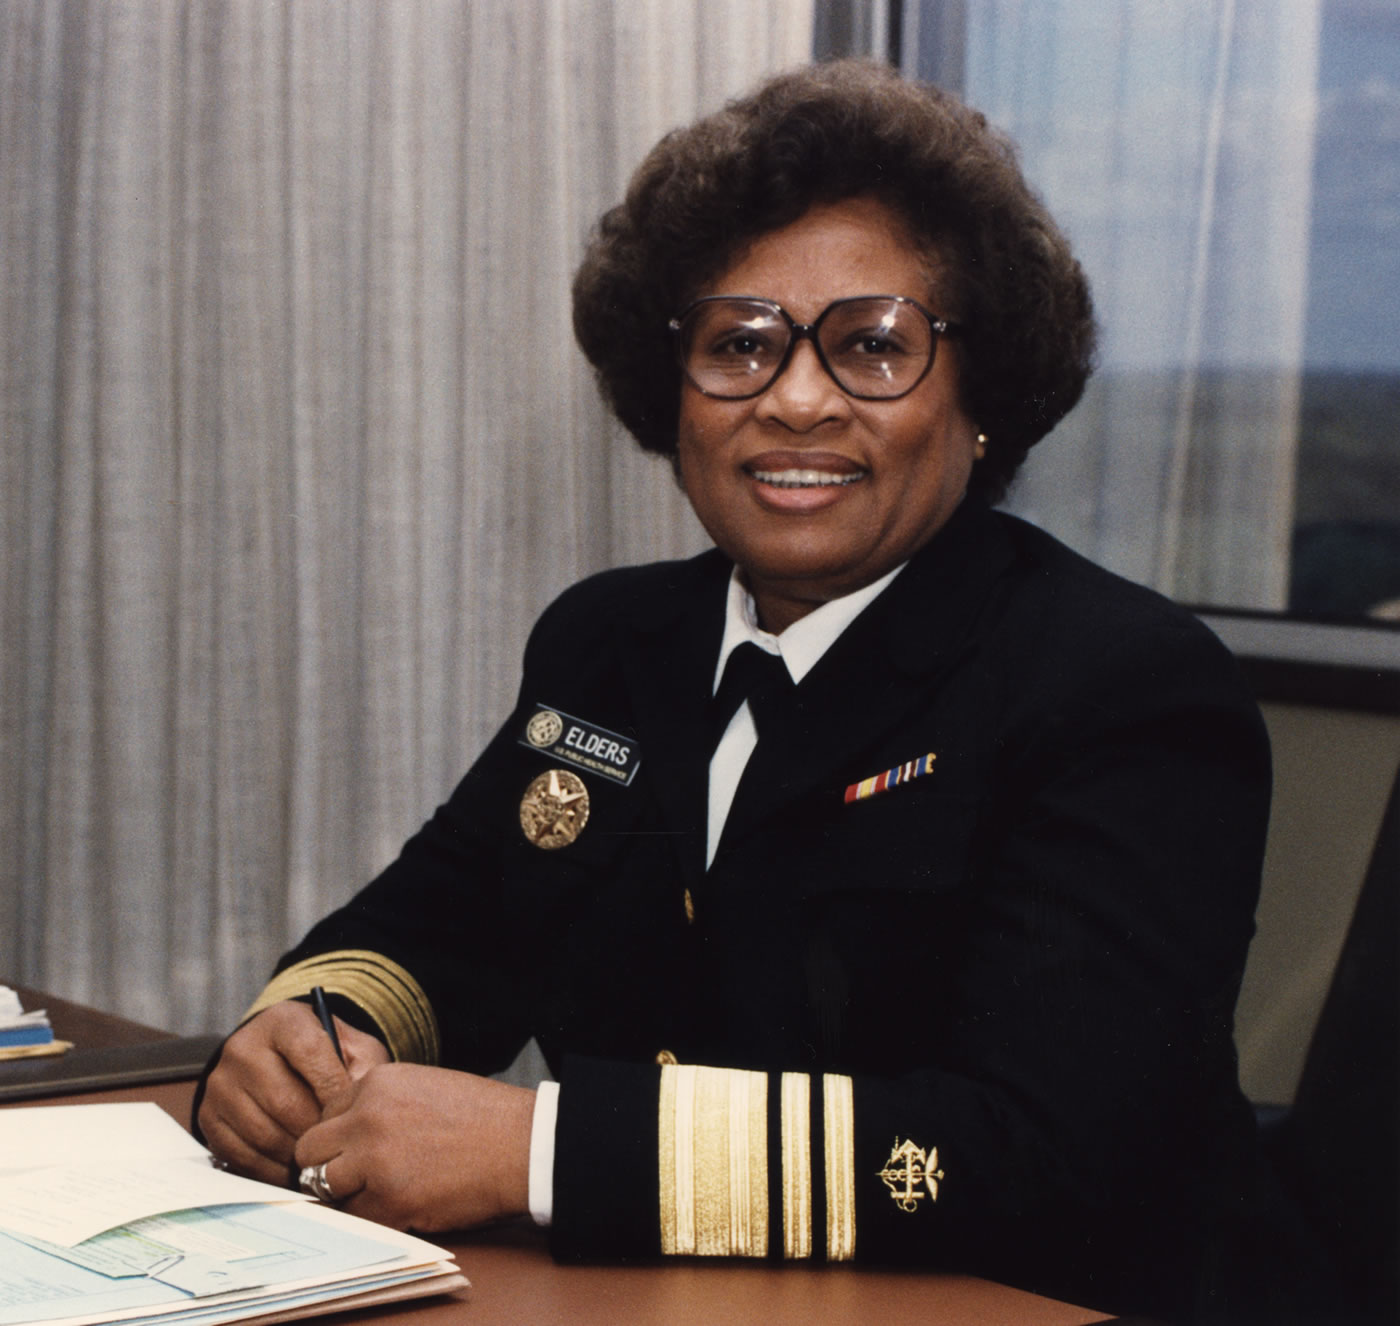 File:Joycelyn Elders official photo portrait.jpg - Wikipedia, the ...